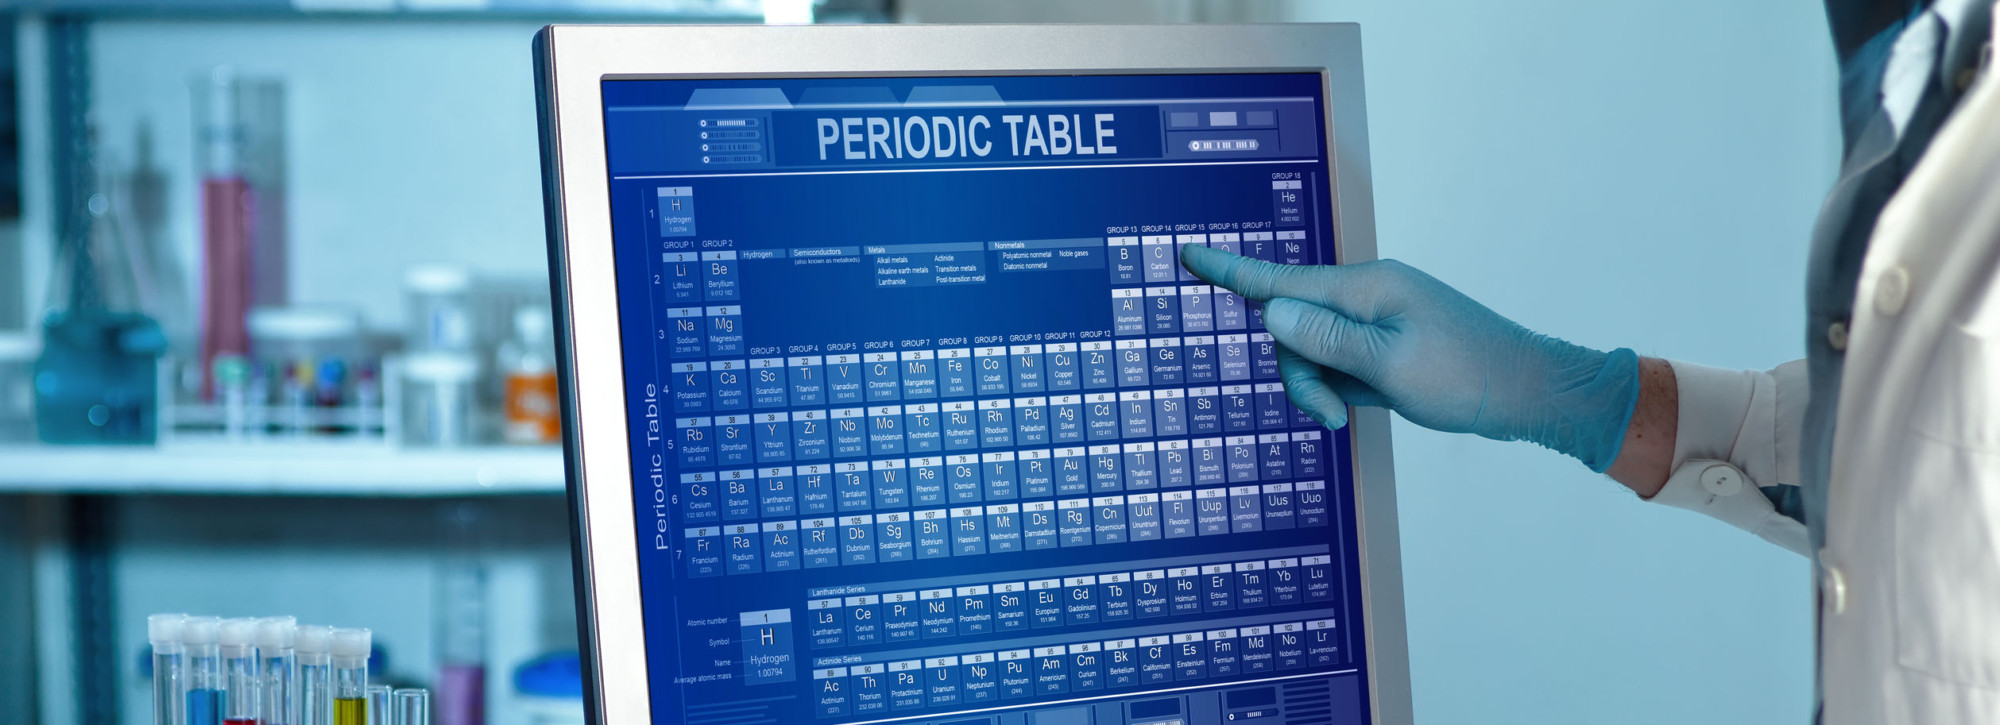 Scientific Working In Lab And Touching A Screen With The Periodi